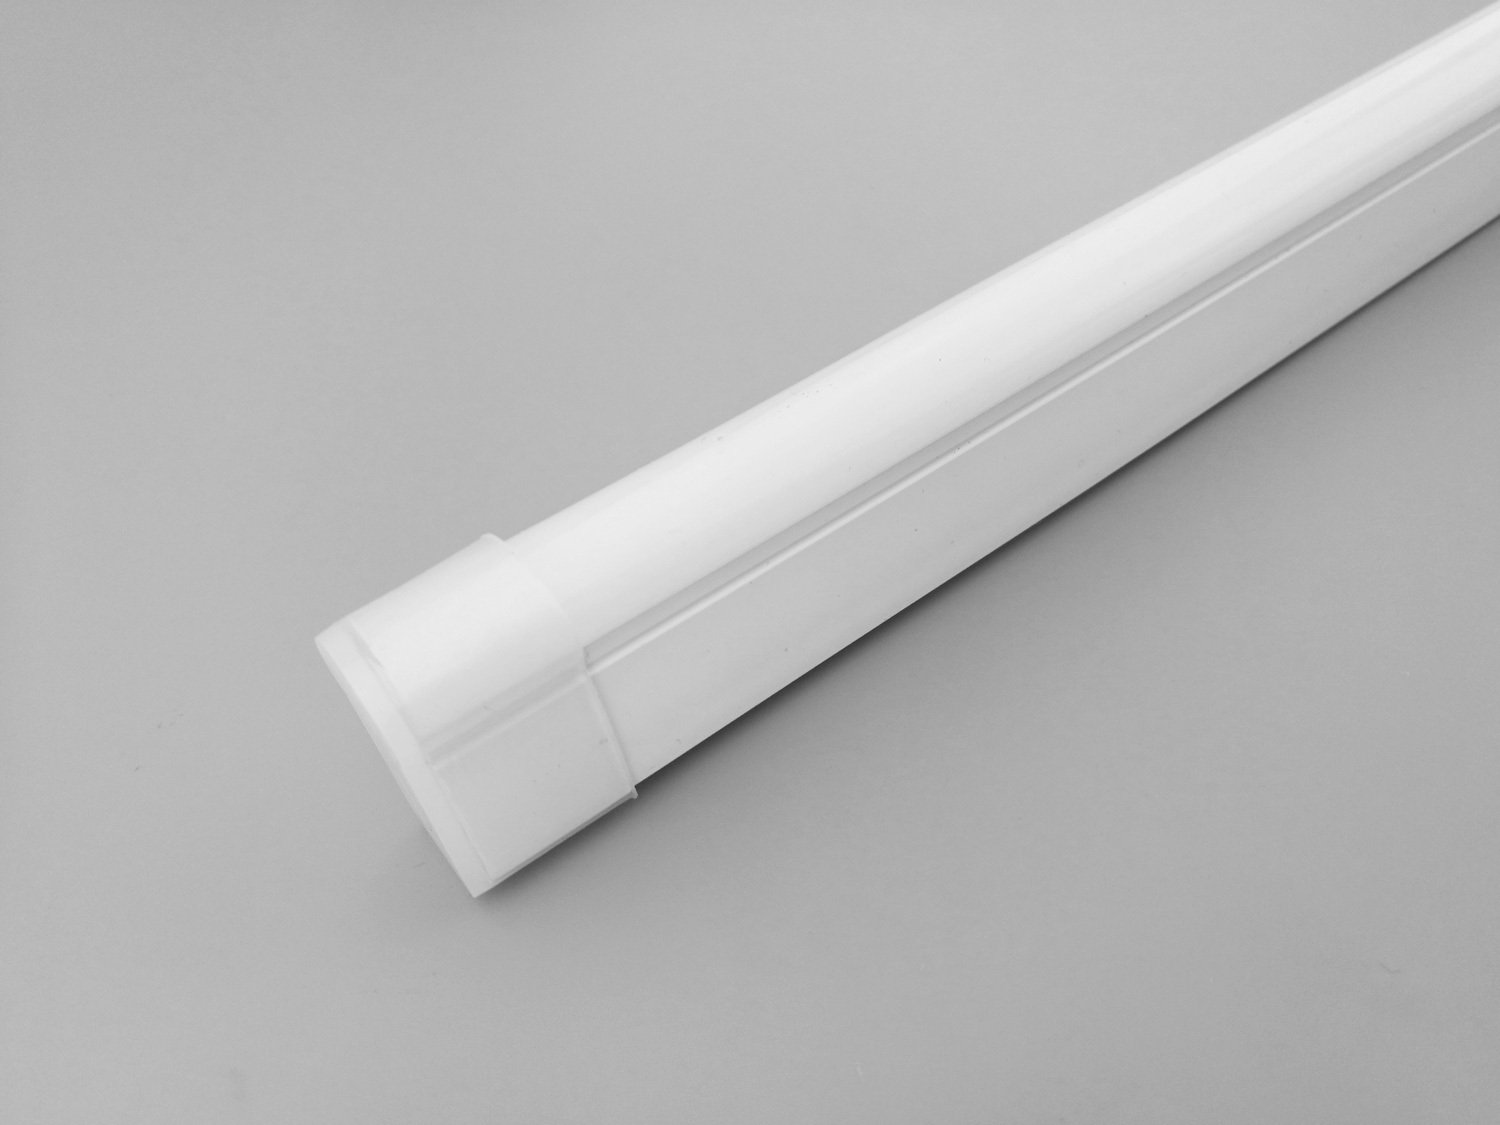 High Performance Flexible Linear Neon Light (DOTLESS) LG10S1225